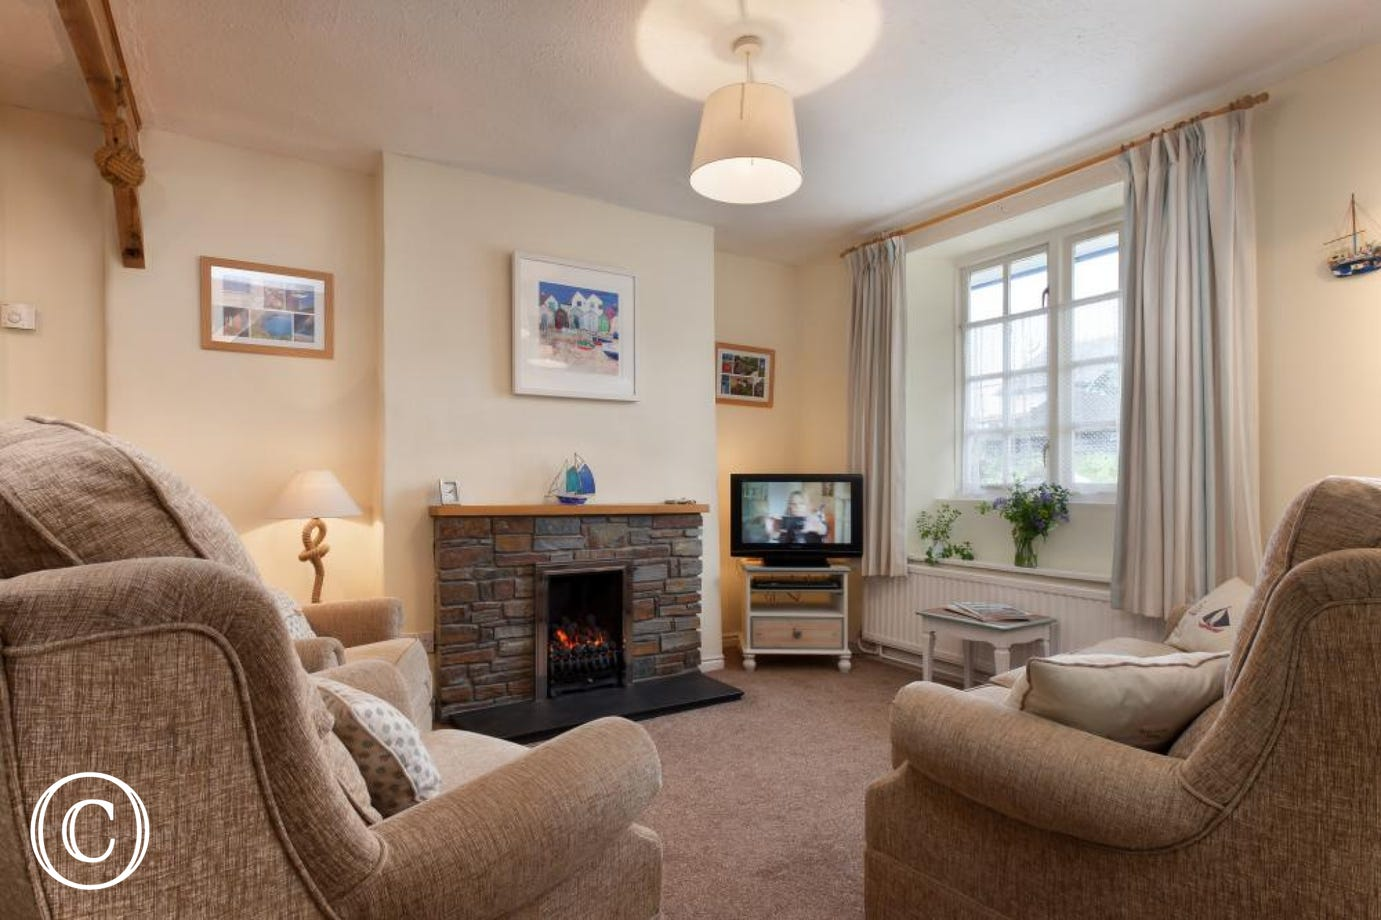 Seaside decoration at this family holiday home just minutes walk from central Shaldon village